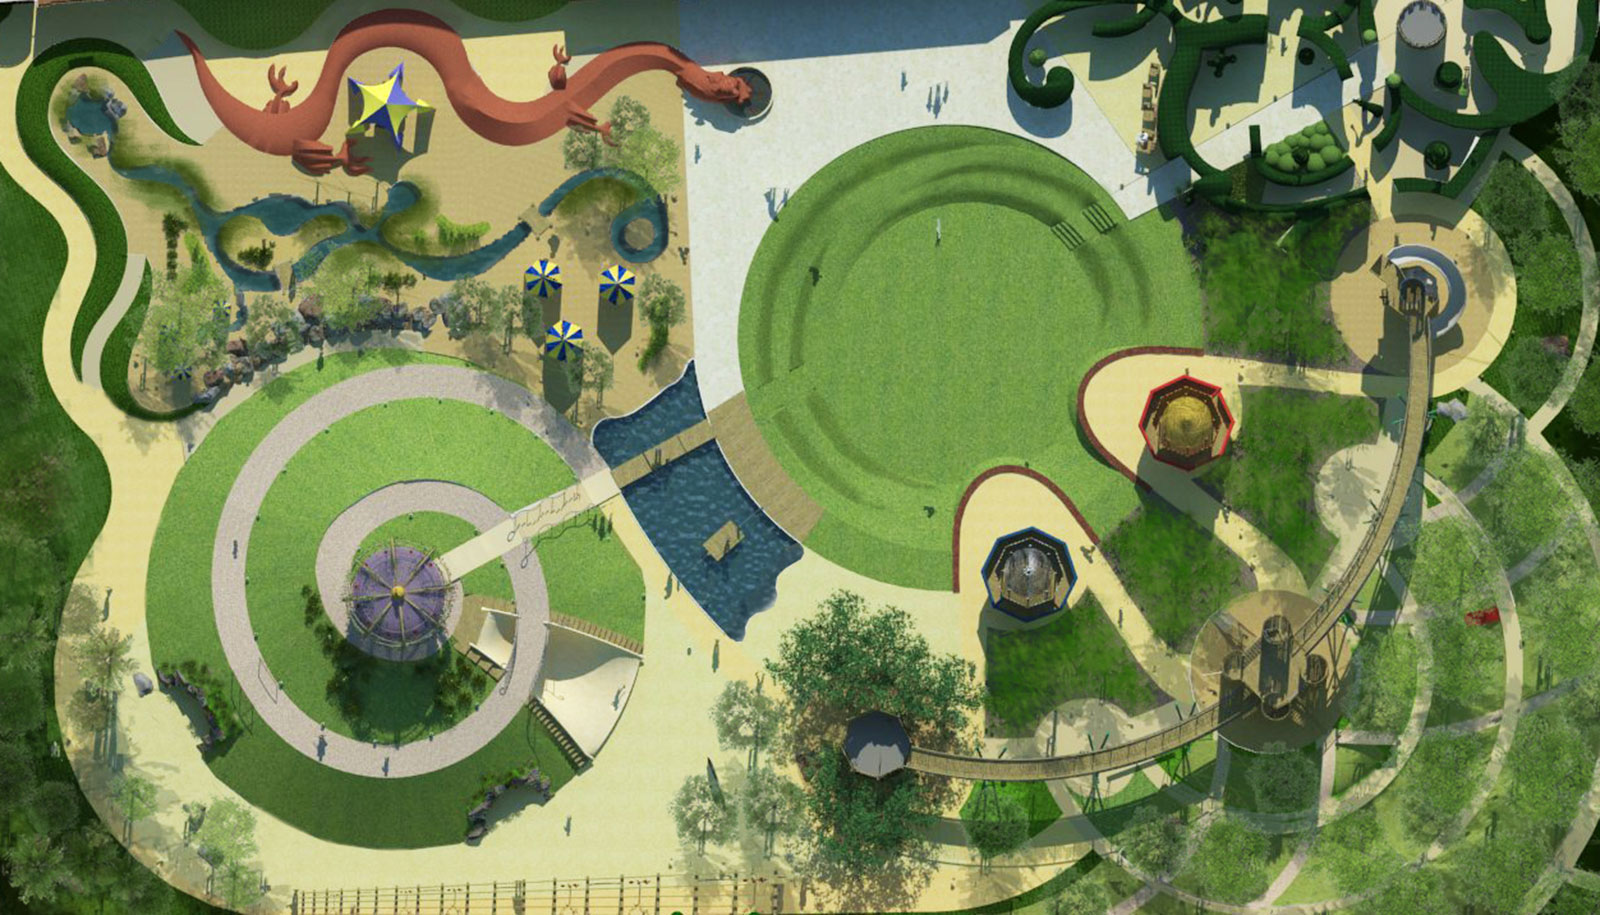 Plan view of the Magic Garden